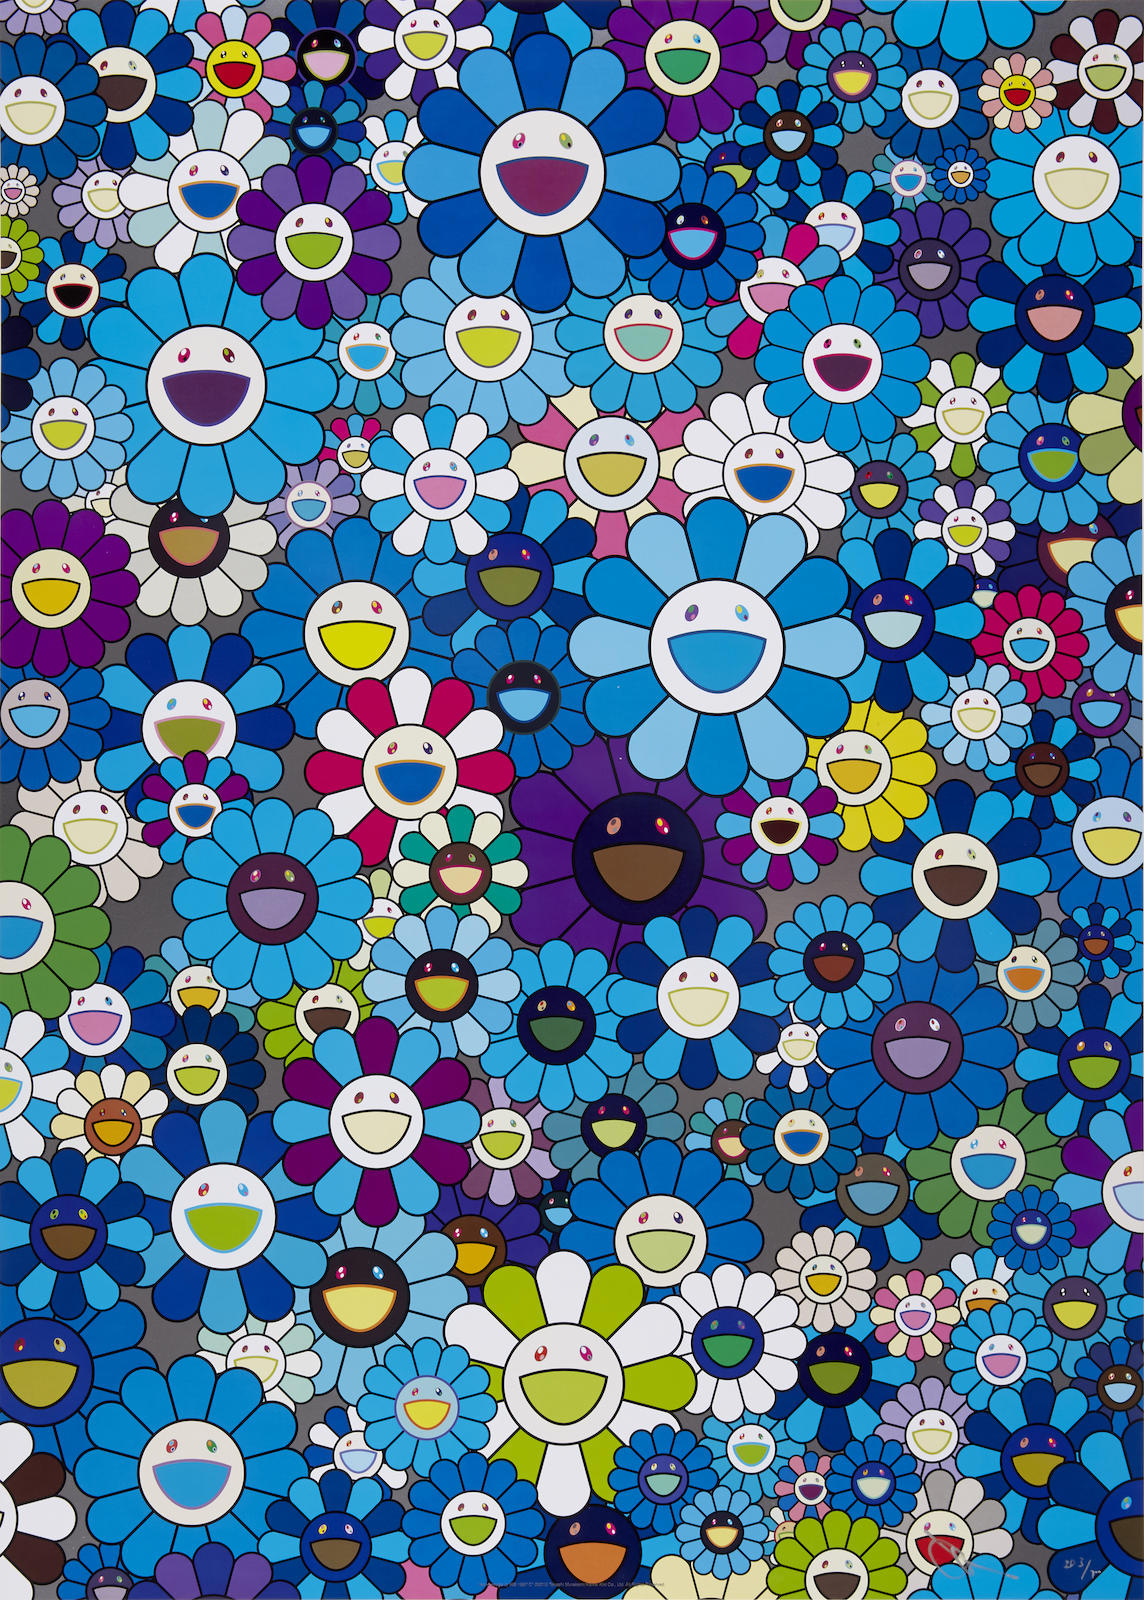 Takashi Murakami-An Homage to IKB 1957 C; An Homage to Monopink 1960 A; An Homage to Monogold 1960 A; An Homage to Yves Kline, Multicolor C-2012